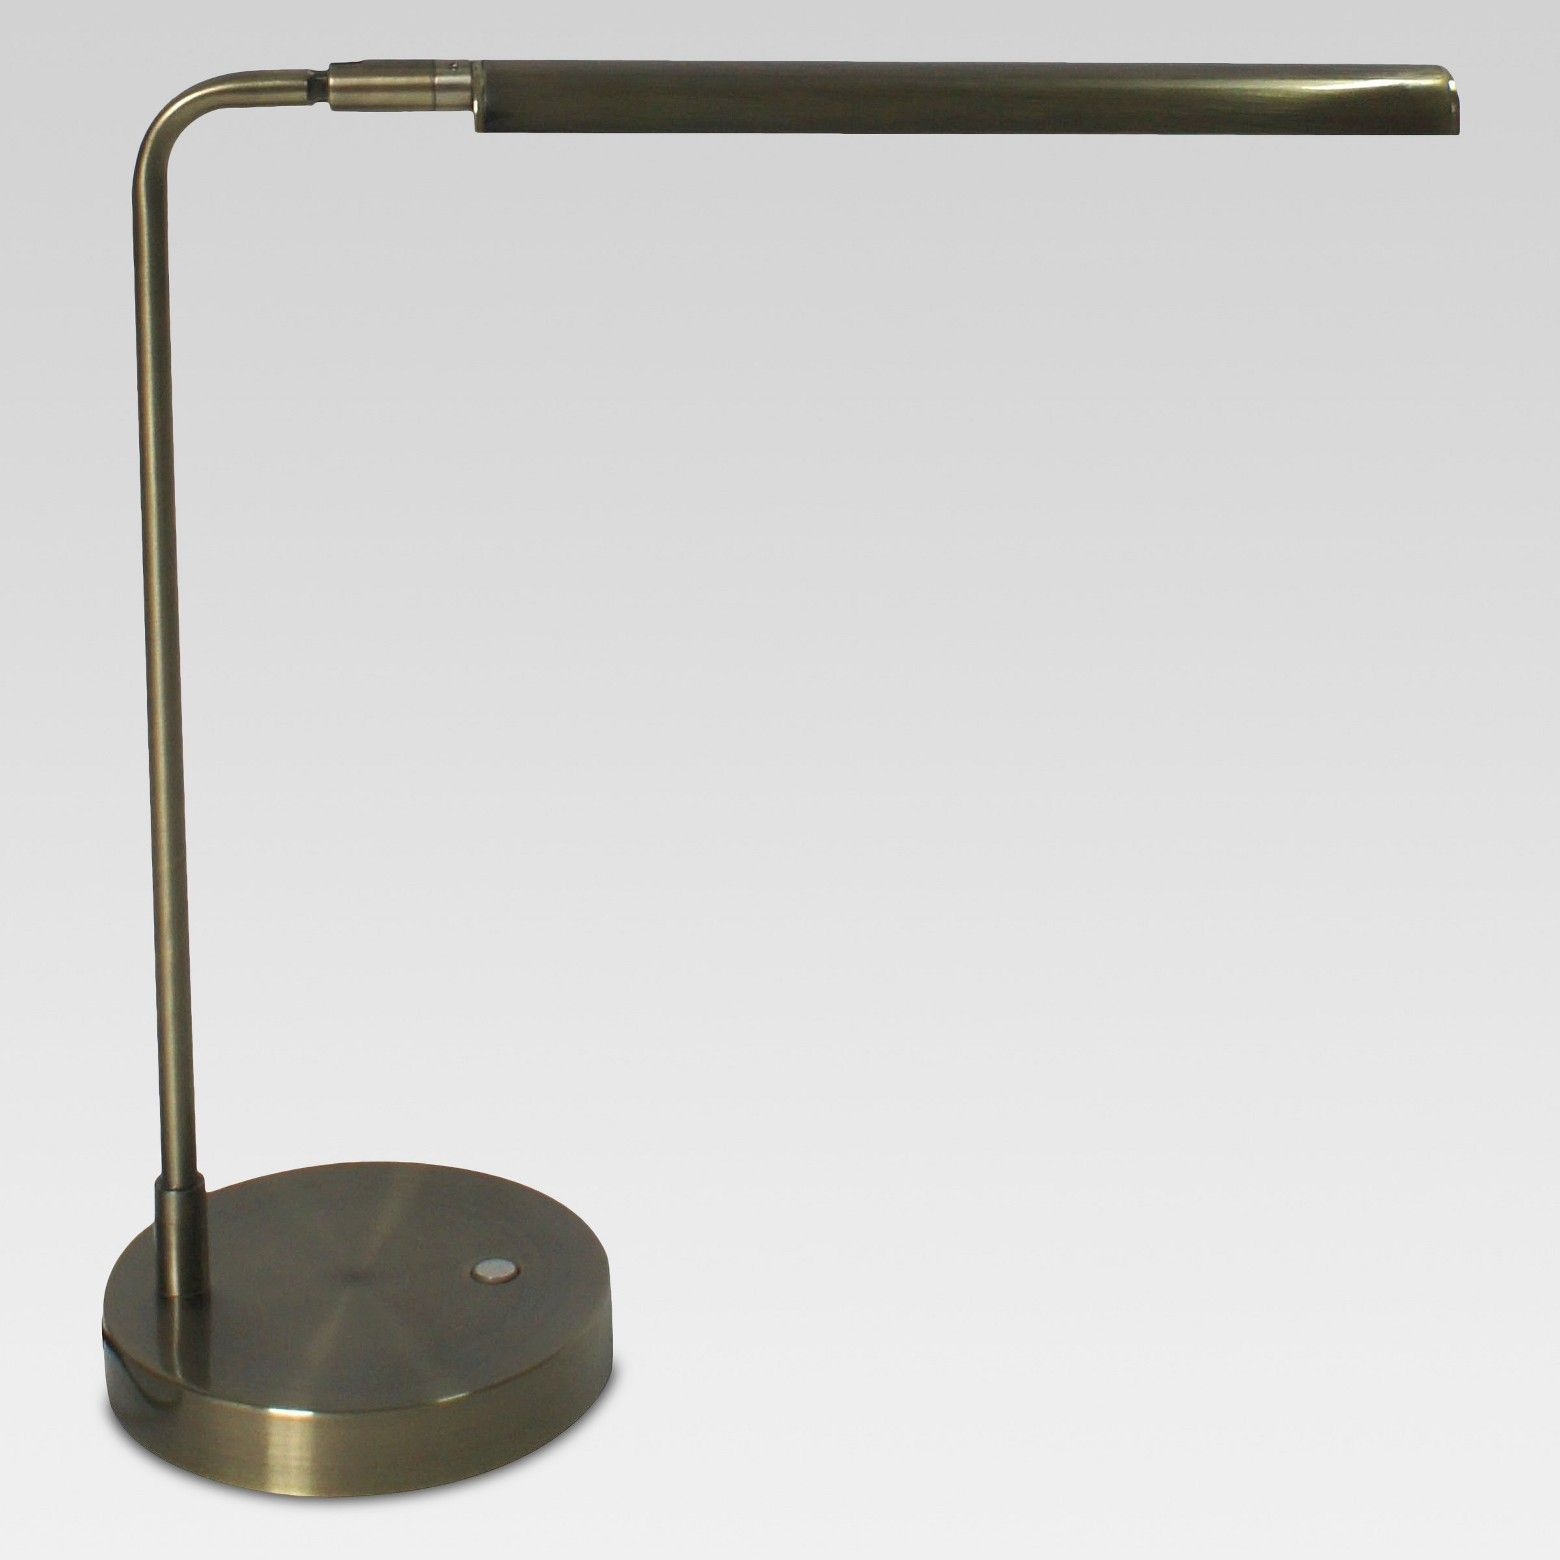 Modern Touch LED Task Lamp Project 62 Target Task